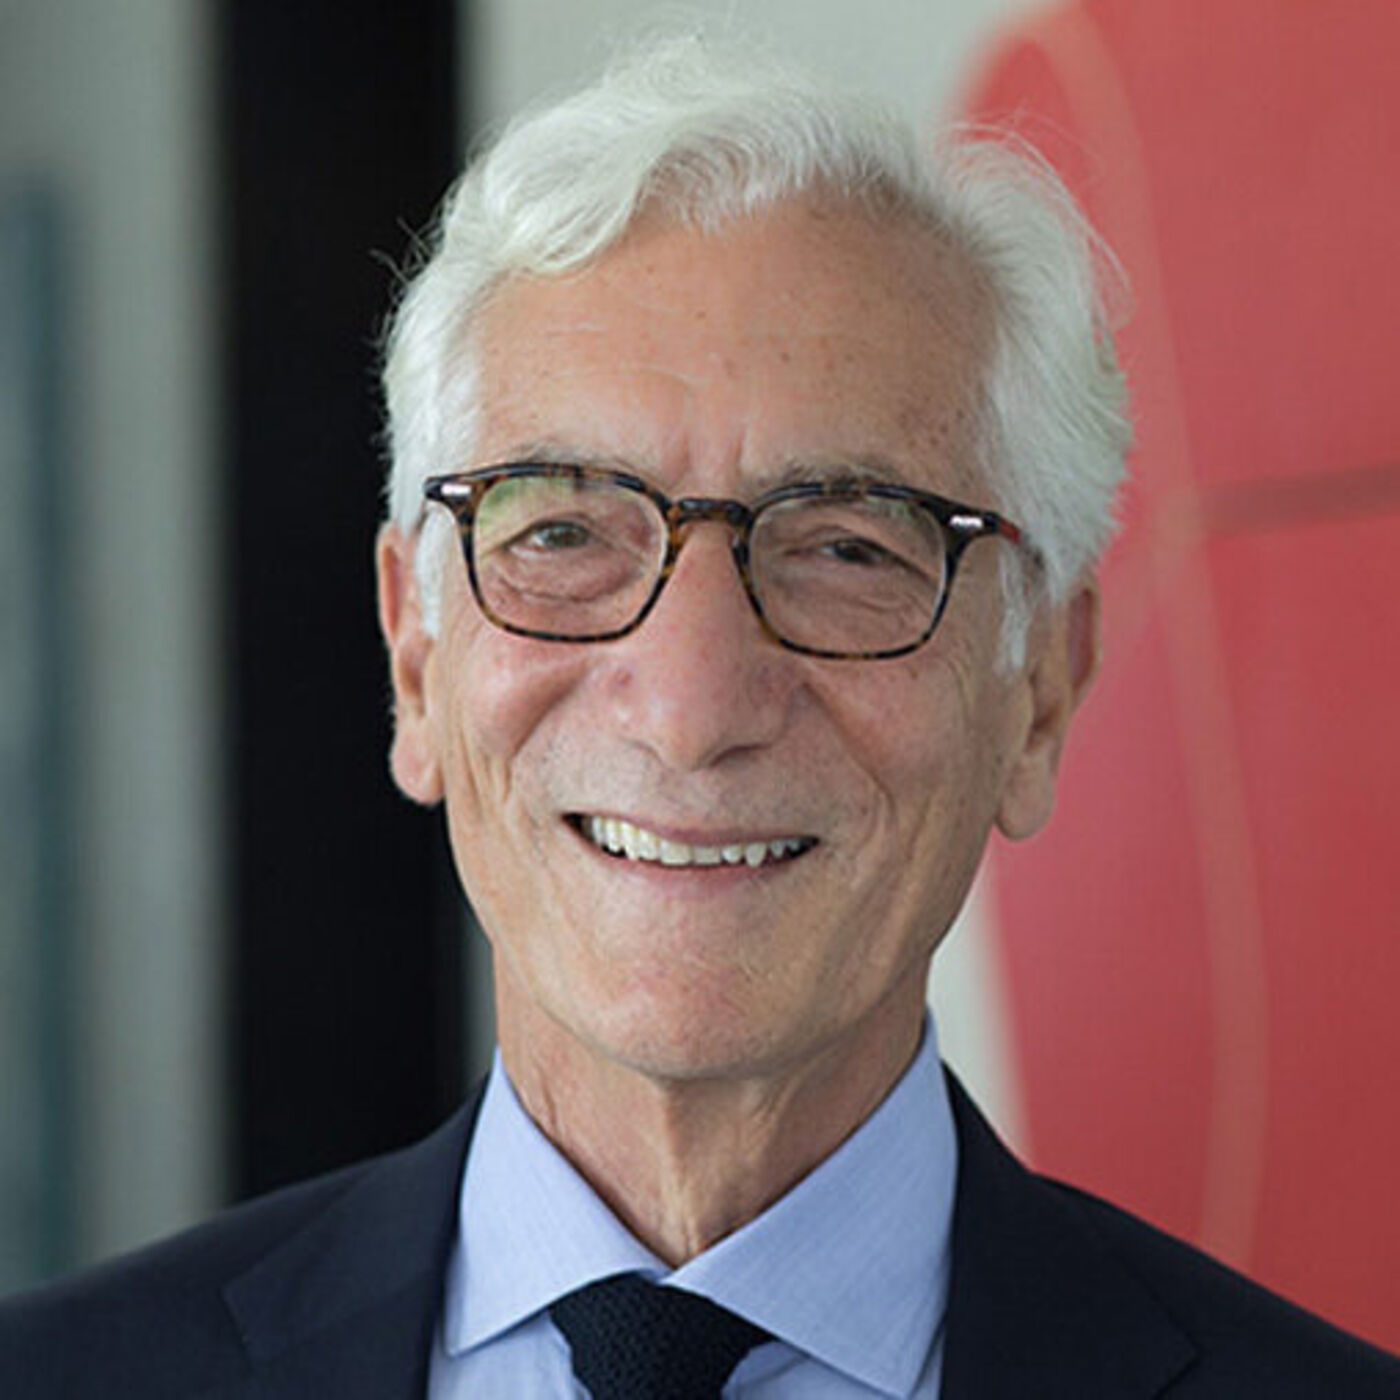 Titans of Finance – Sir Ronald Cohen on Impact Investing